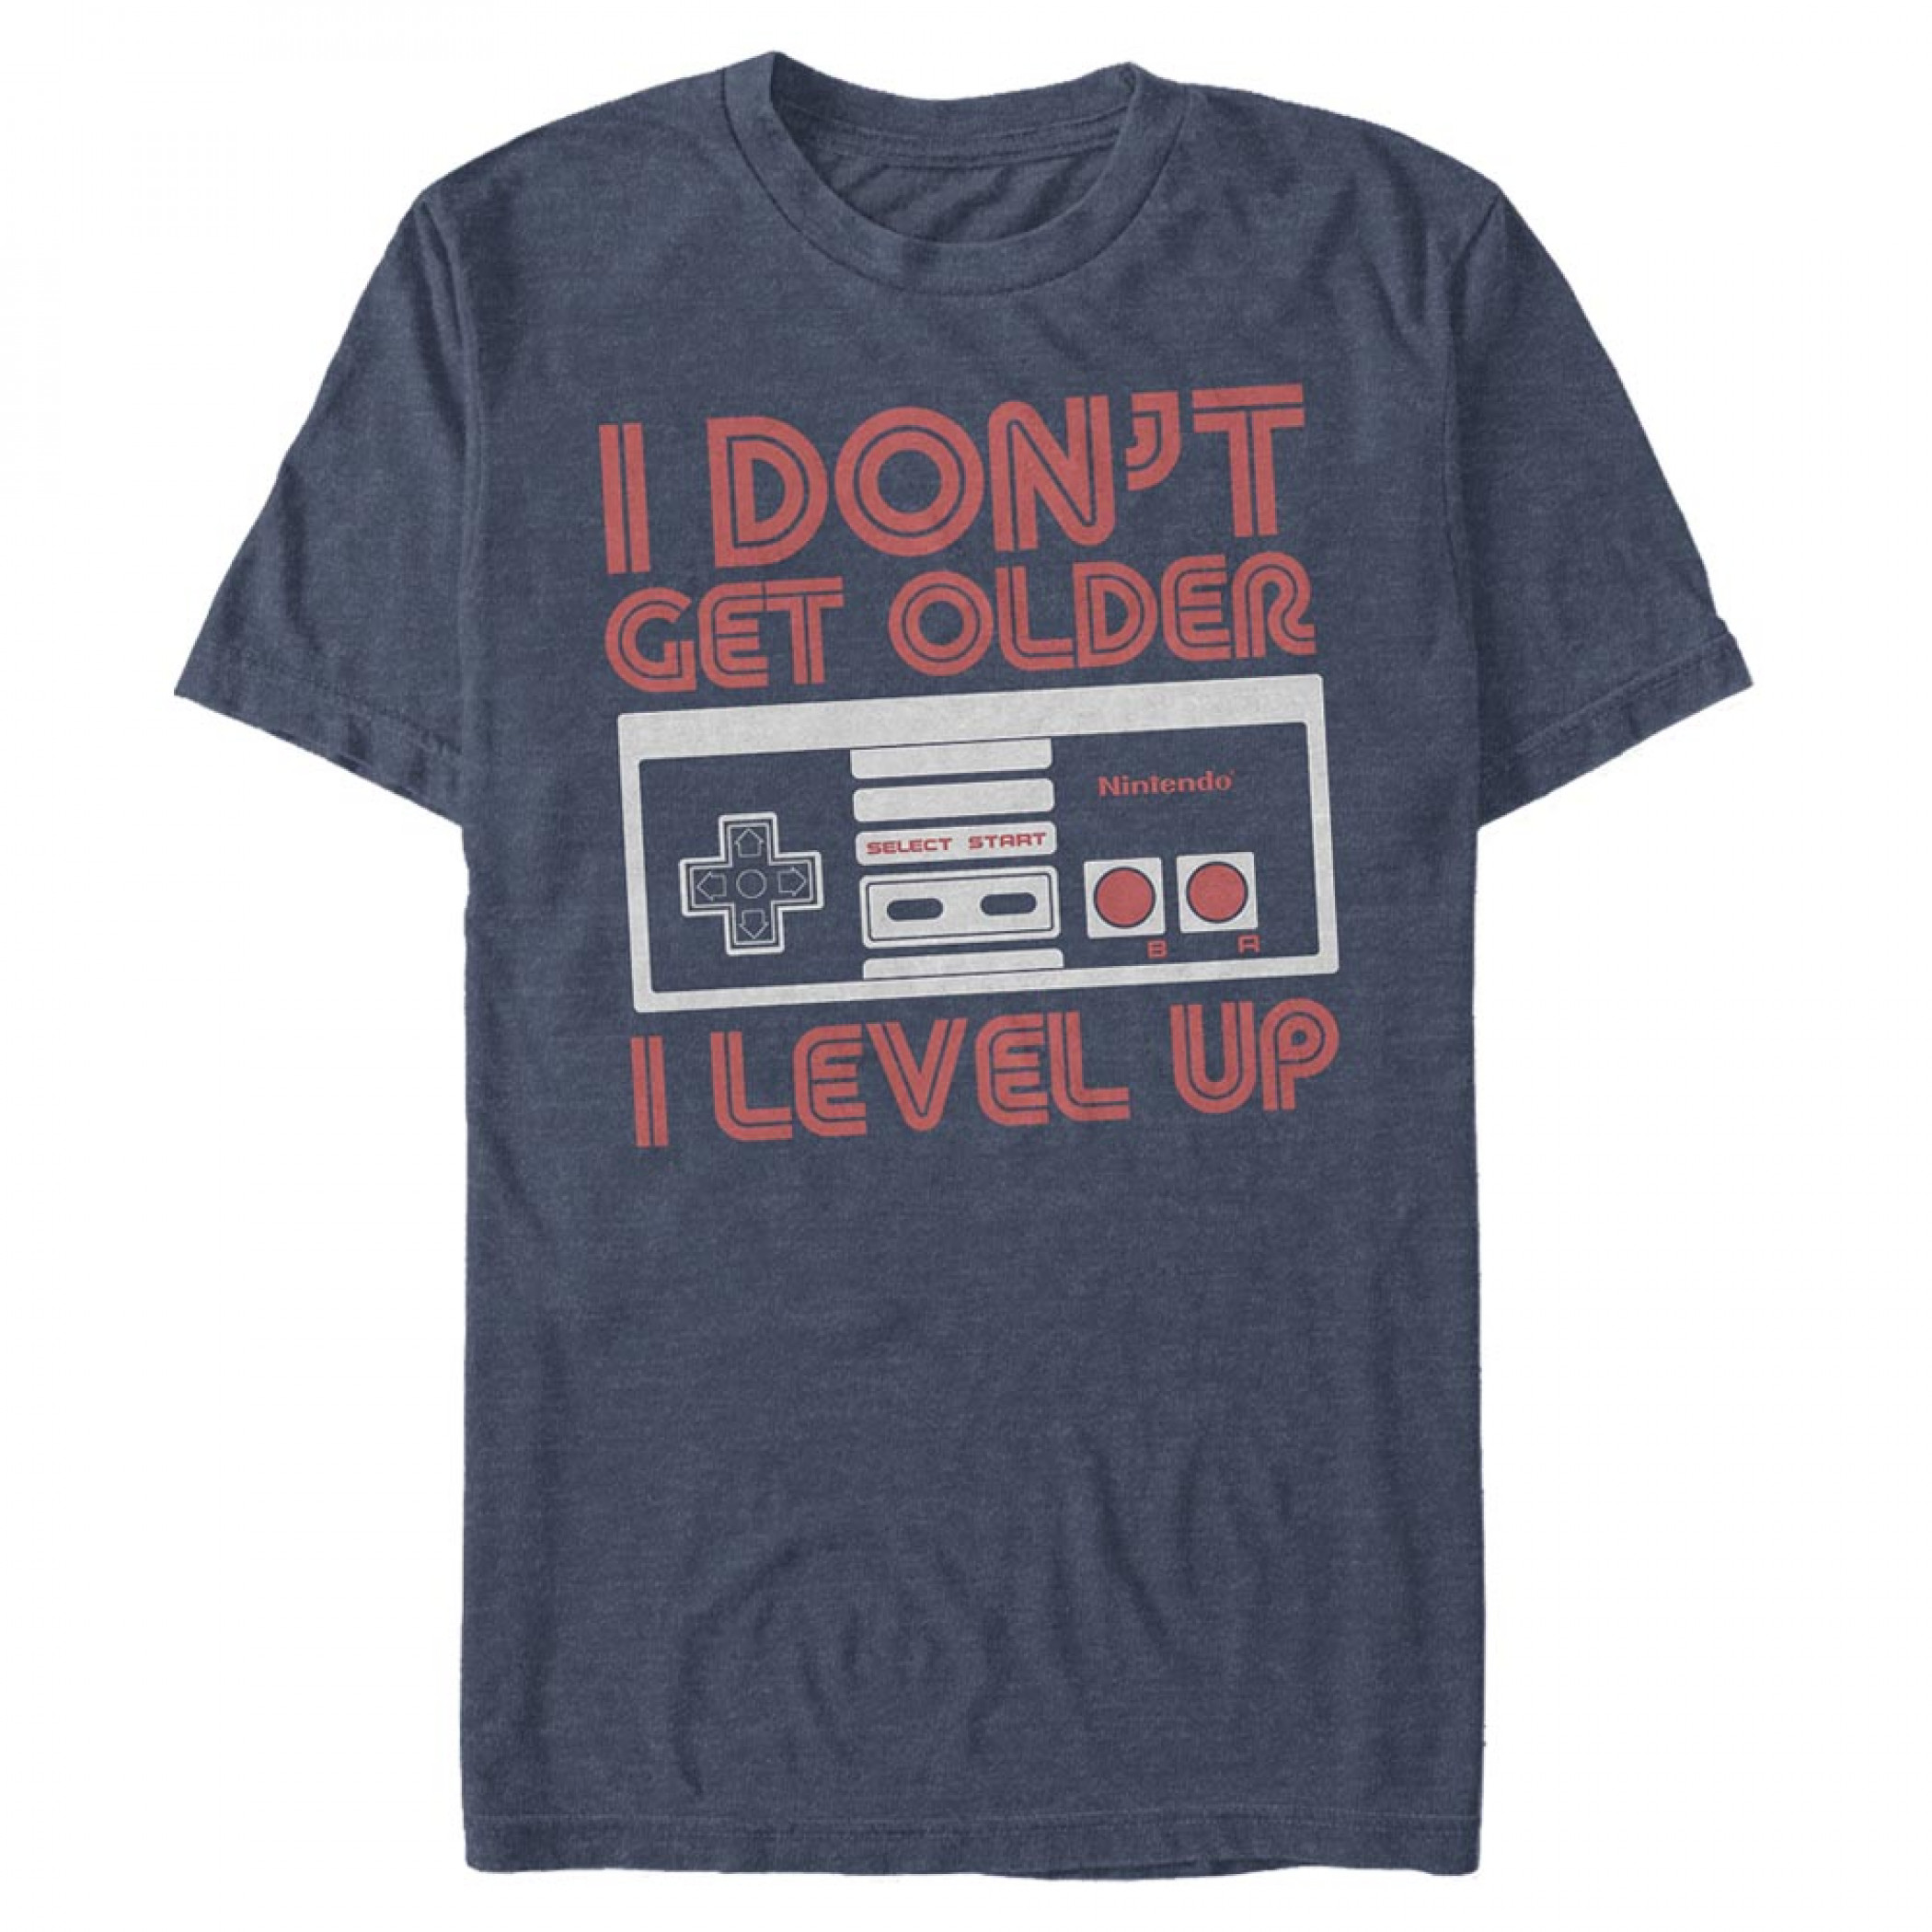 Nintendo Controller I Don't Get Older- I Level Up T-Shirt